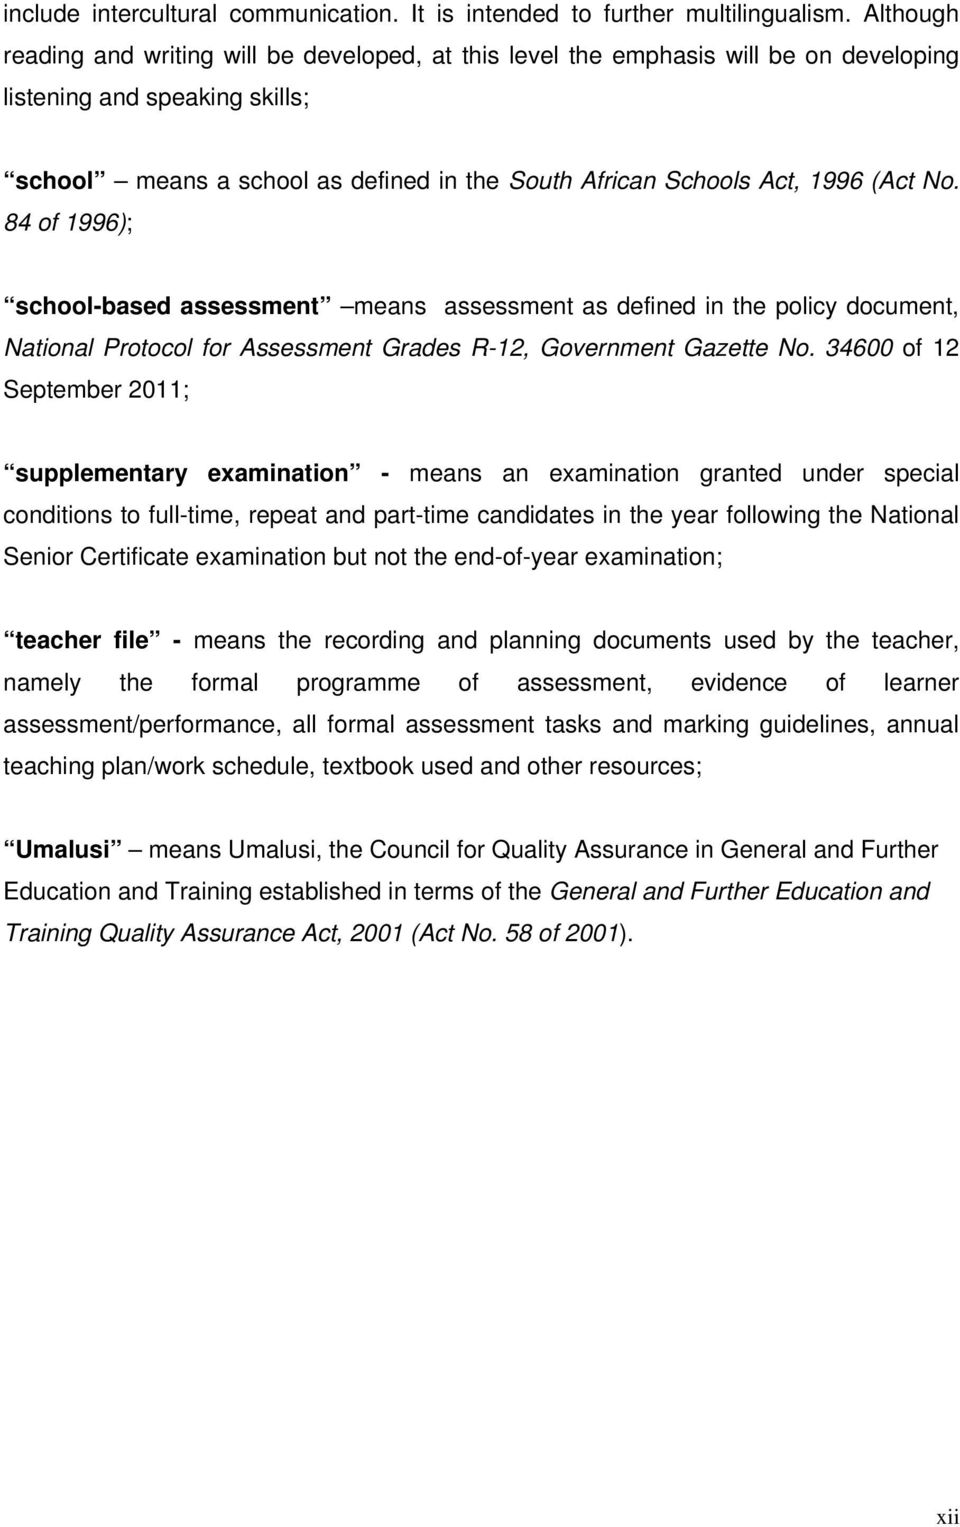 (Act No. 84 of 1996); school-based assessment means assessment as defined in the policy document, National Protocol for Assessment Grades R-12, Government Gazette No.